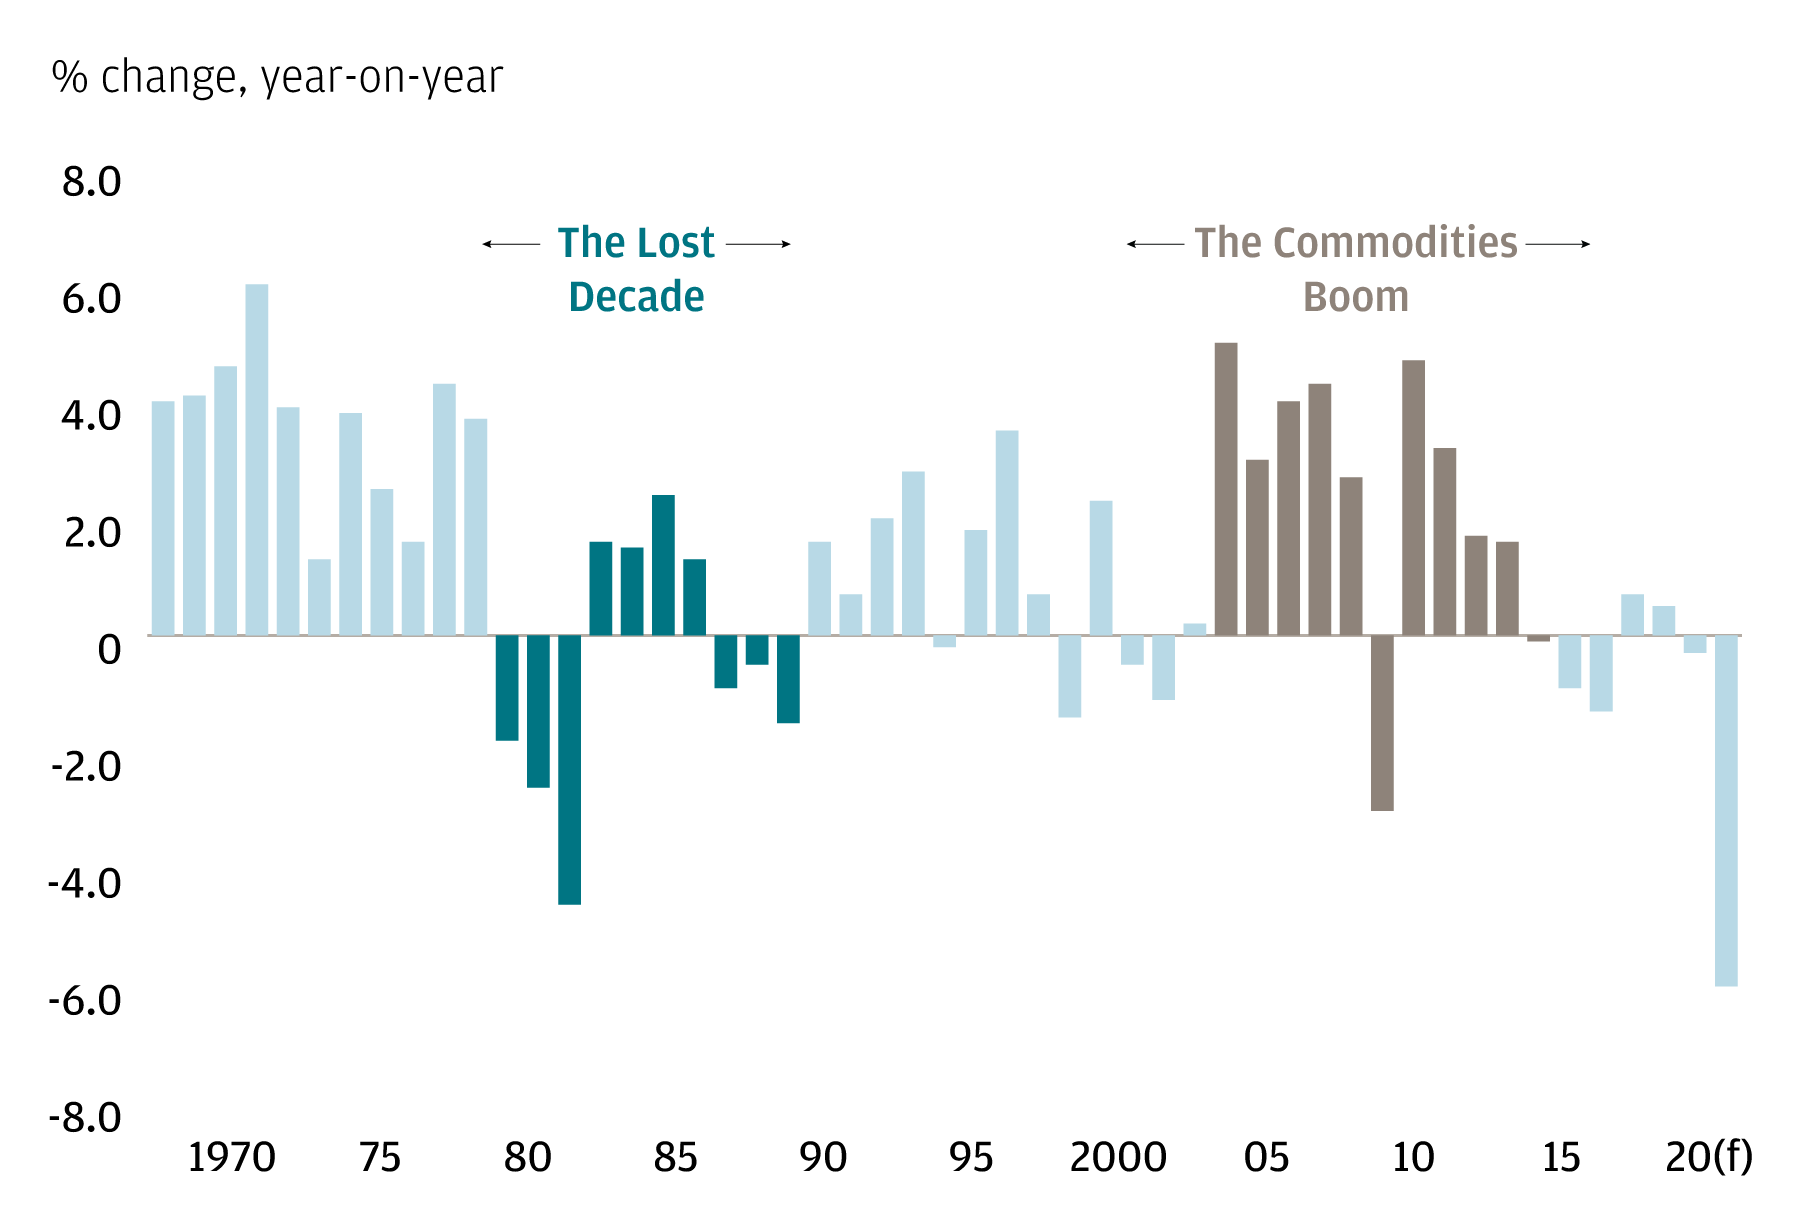 A bar chart showing real GDP per capita for Latin America and the Caribbean (percentage change, year on year), highlighting the Lost Decade and the Commodities Boom.